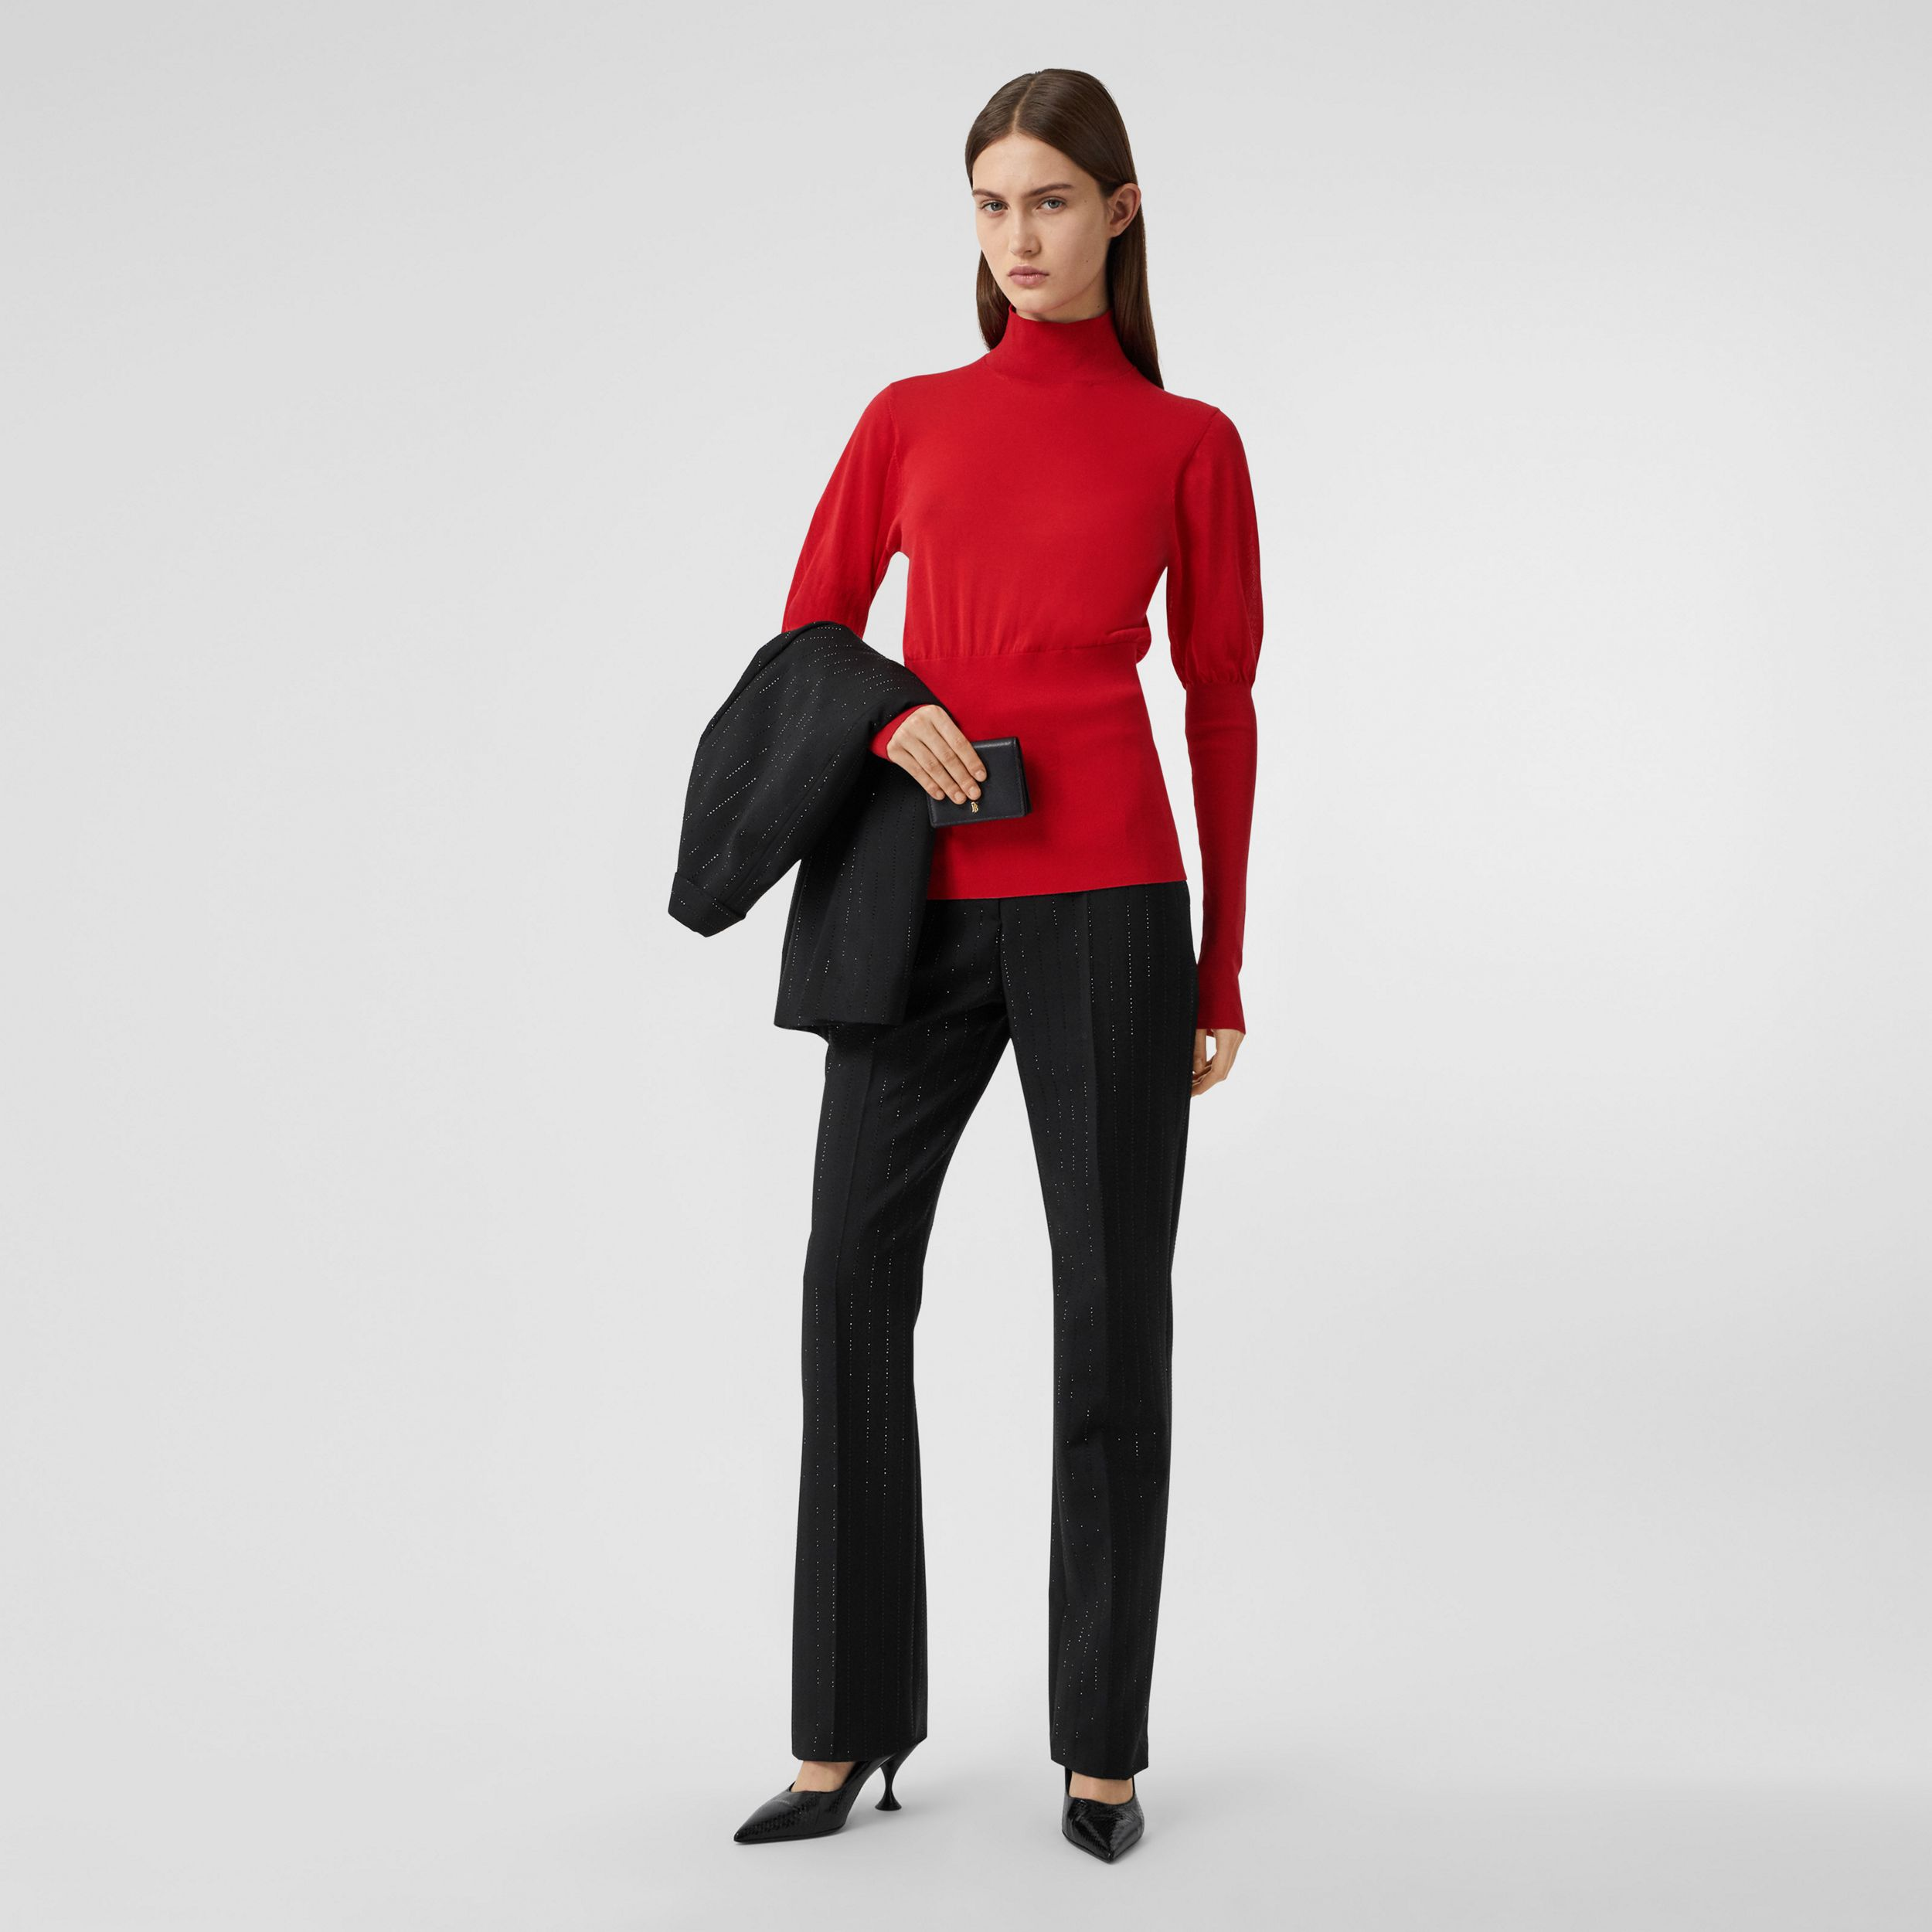 Puff-sleeve Knit Cotton Blend Turtleneck Sweater in Bright Red - Women | Burberry - 1